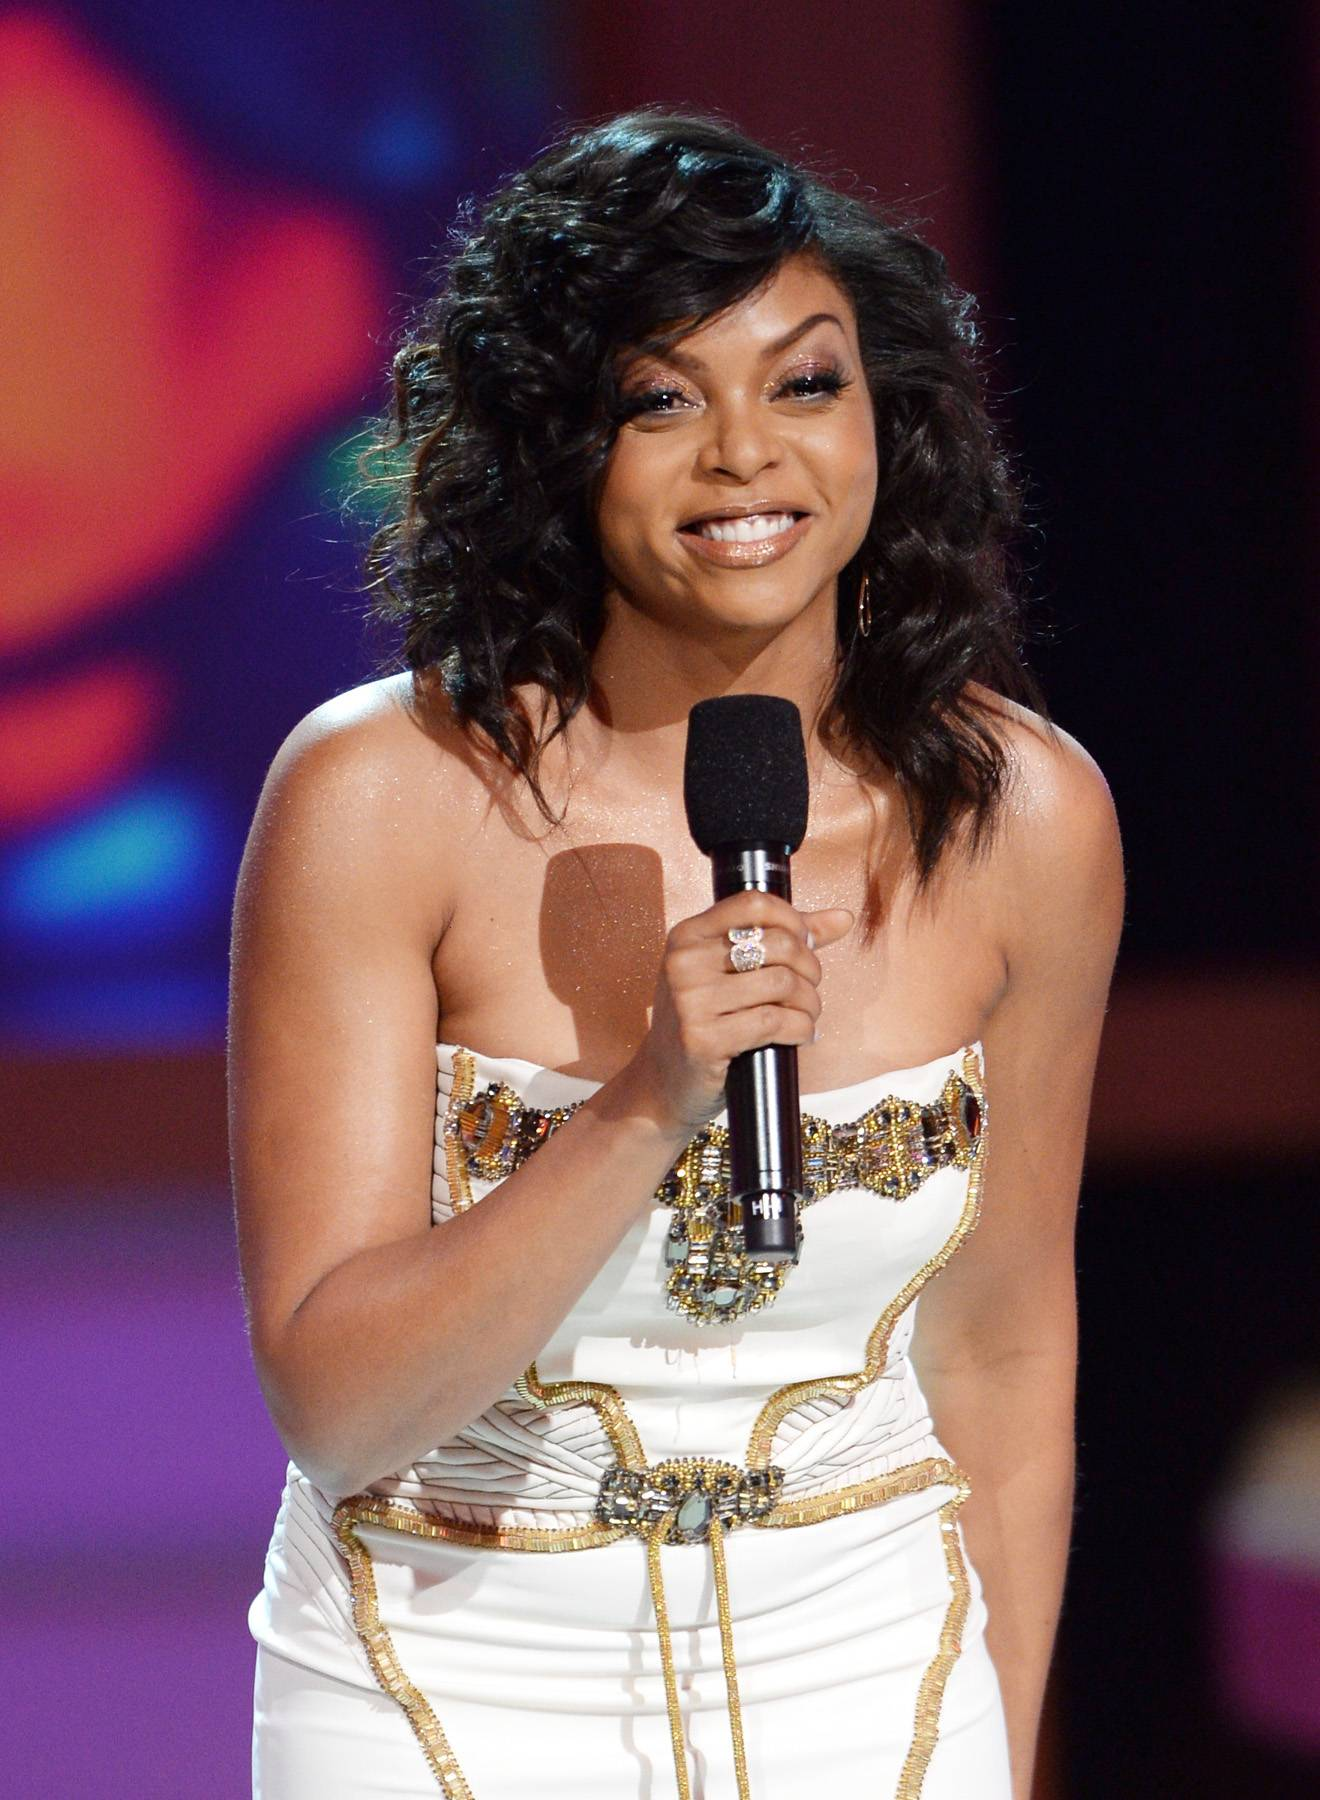 """Taraji's Testimony - After dishing on taking the hosting torch from Steve Harvey, Taraji shares her testimony of journeying to L.A. from D.C. with seven hundred dollars, her son and Jesus. It's safe to say she """"started from the bottom now she's here.""""(Photo: Jason Kempin/Getty Images for BET)"""